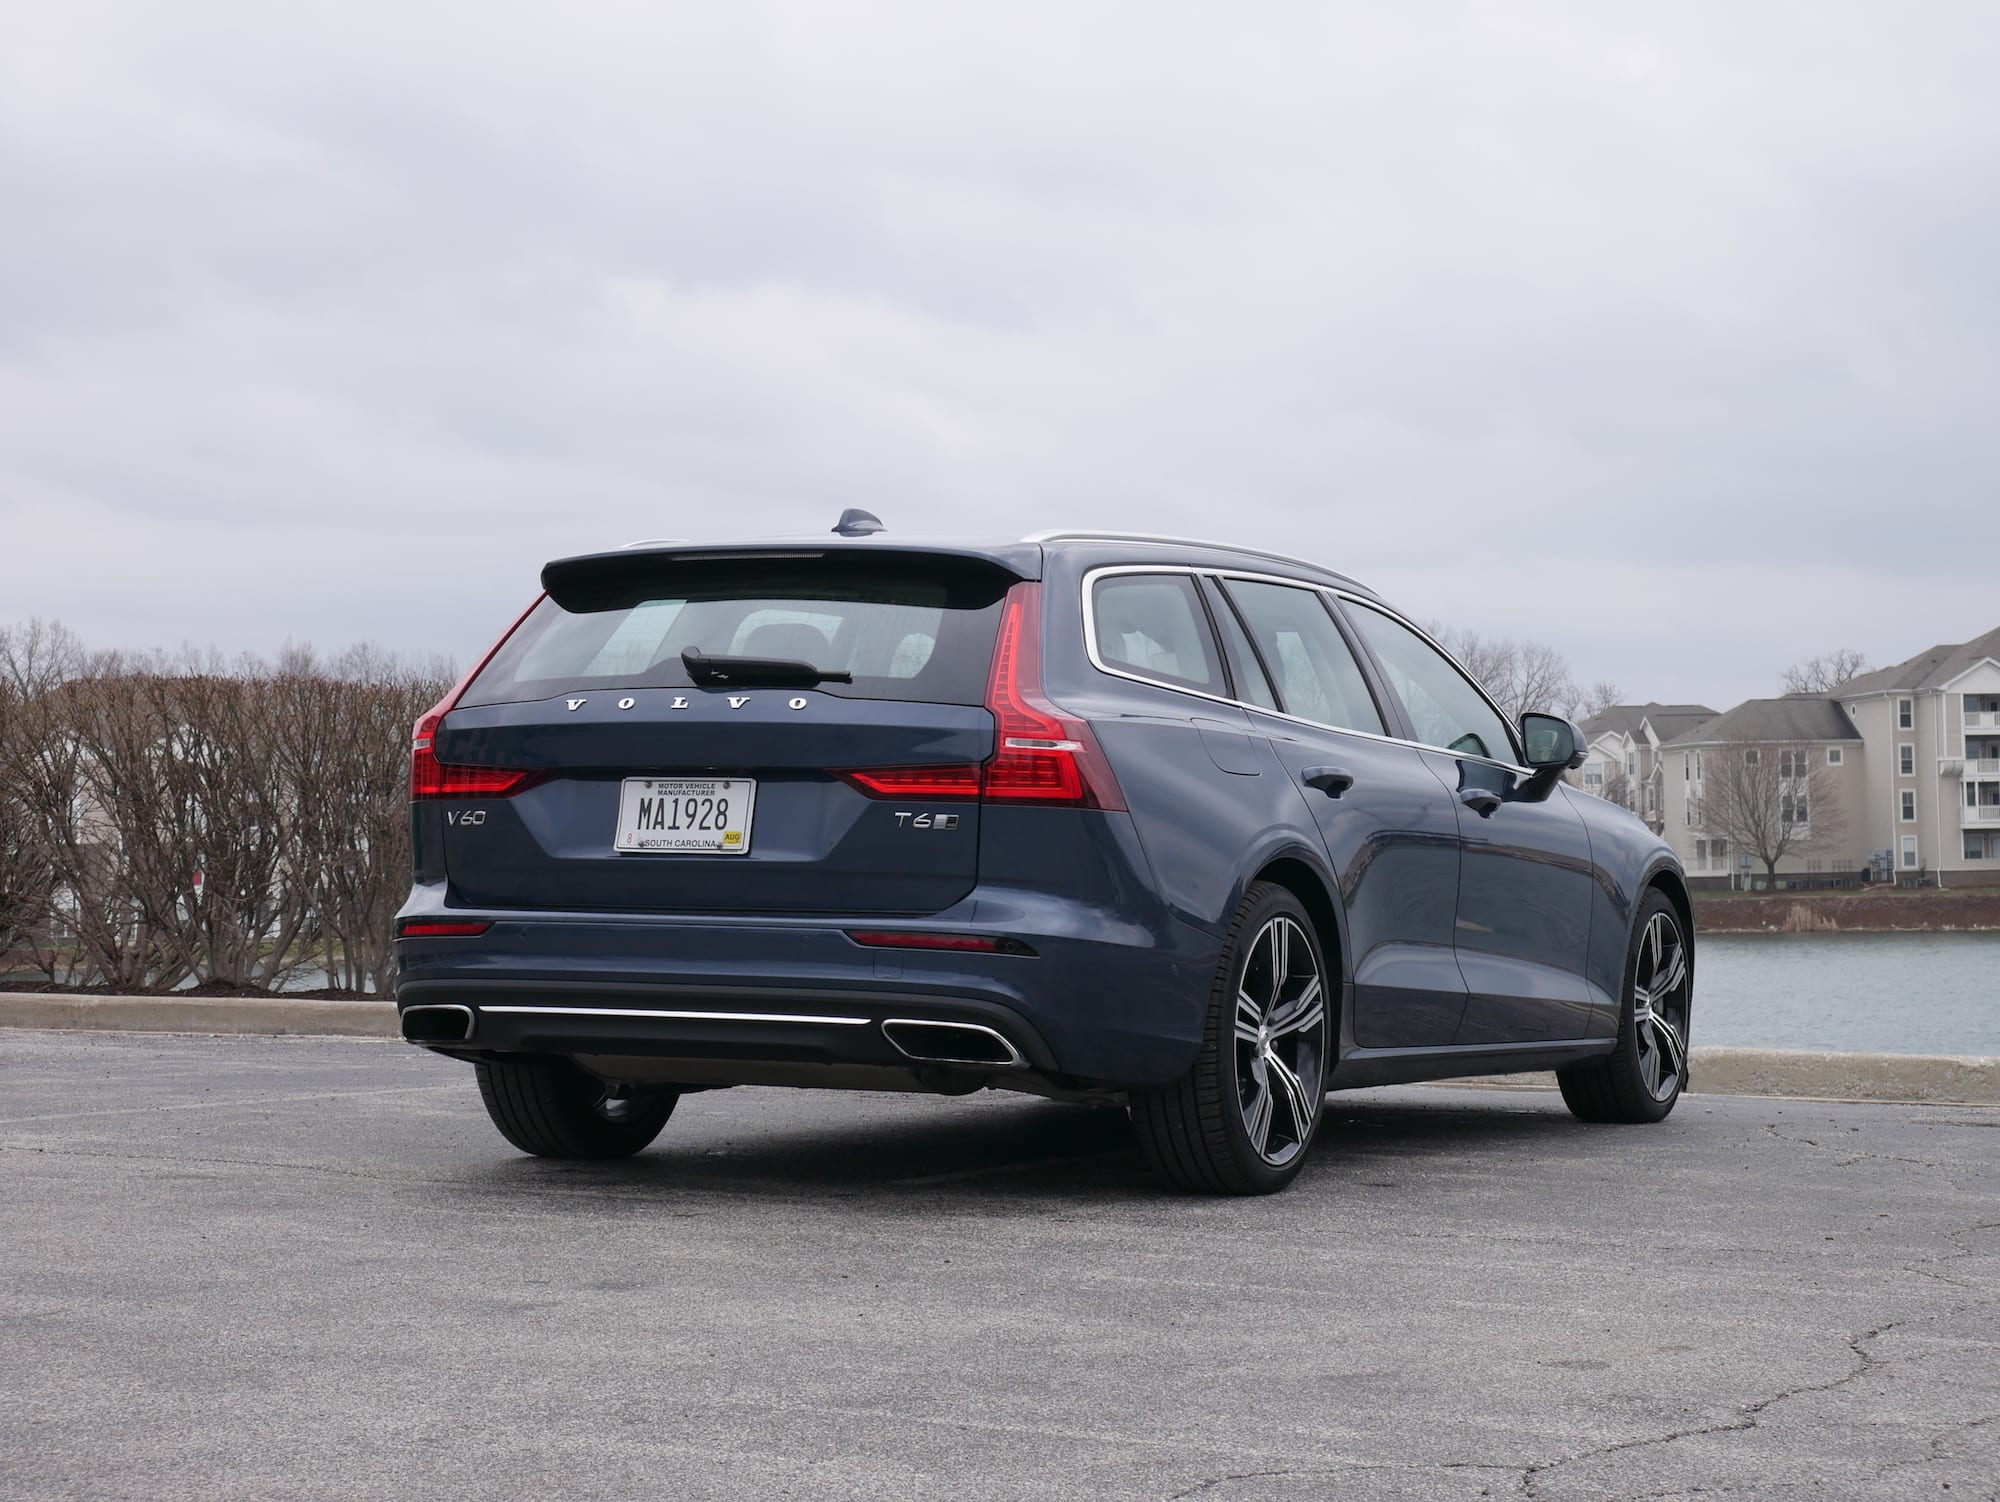 2019 Volvo V60 T6 Inscription rear